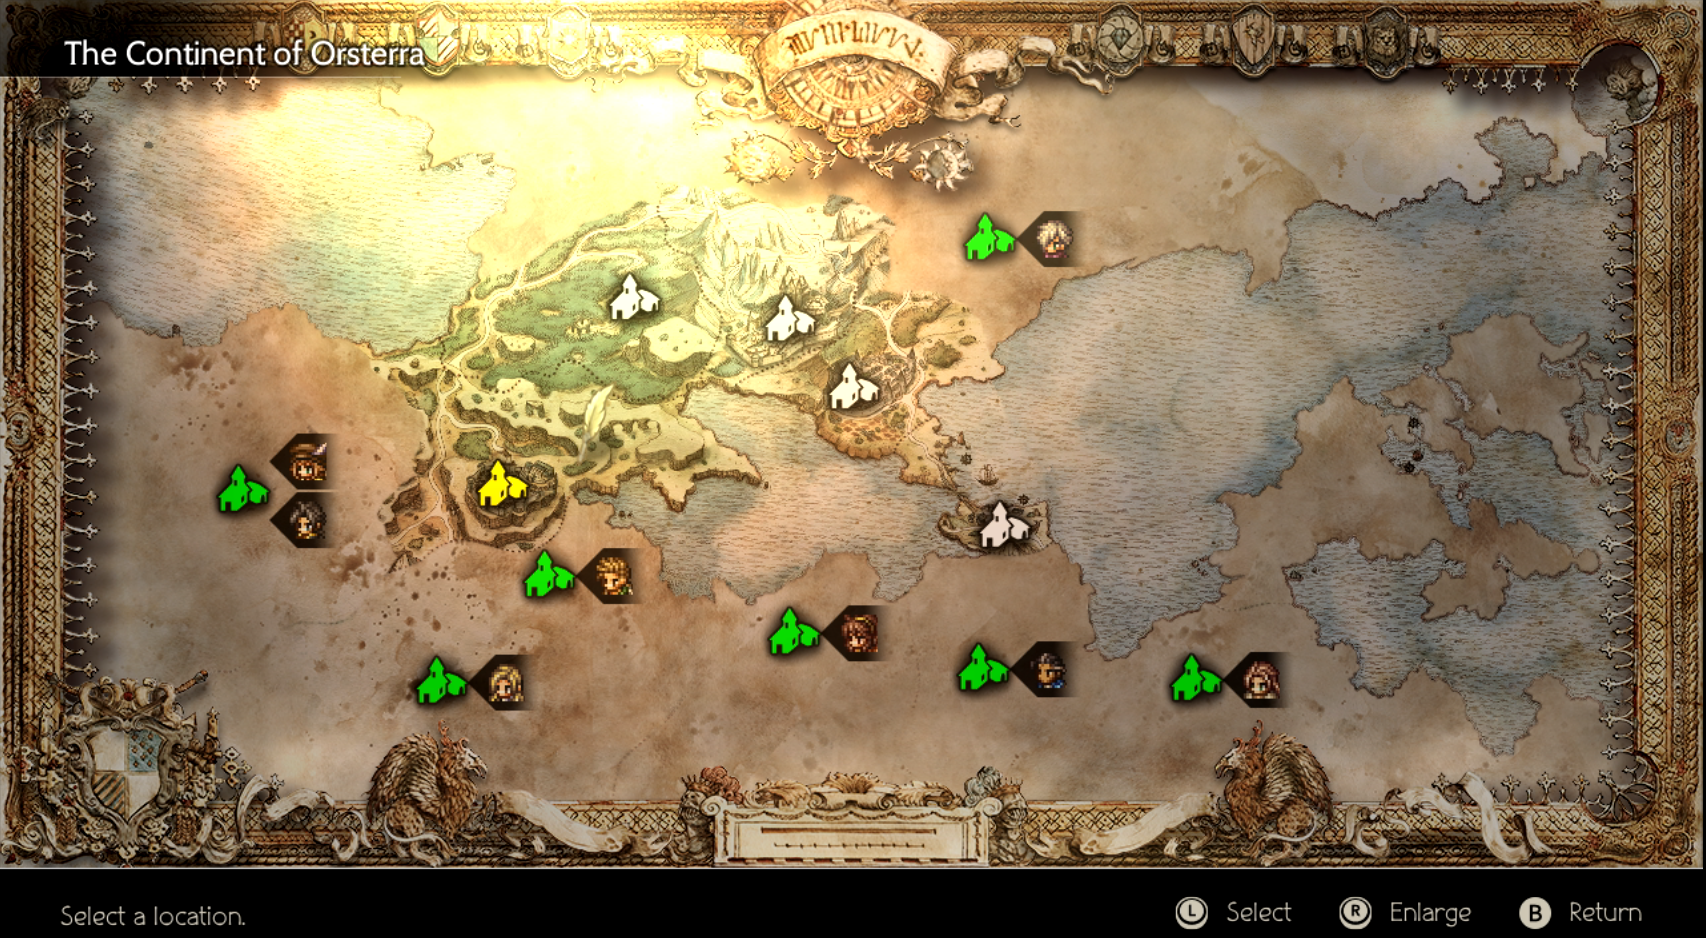 The overworld map seems small, but packs quite a lot of content.